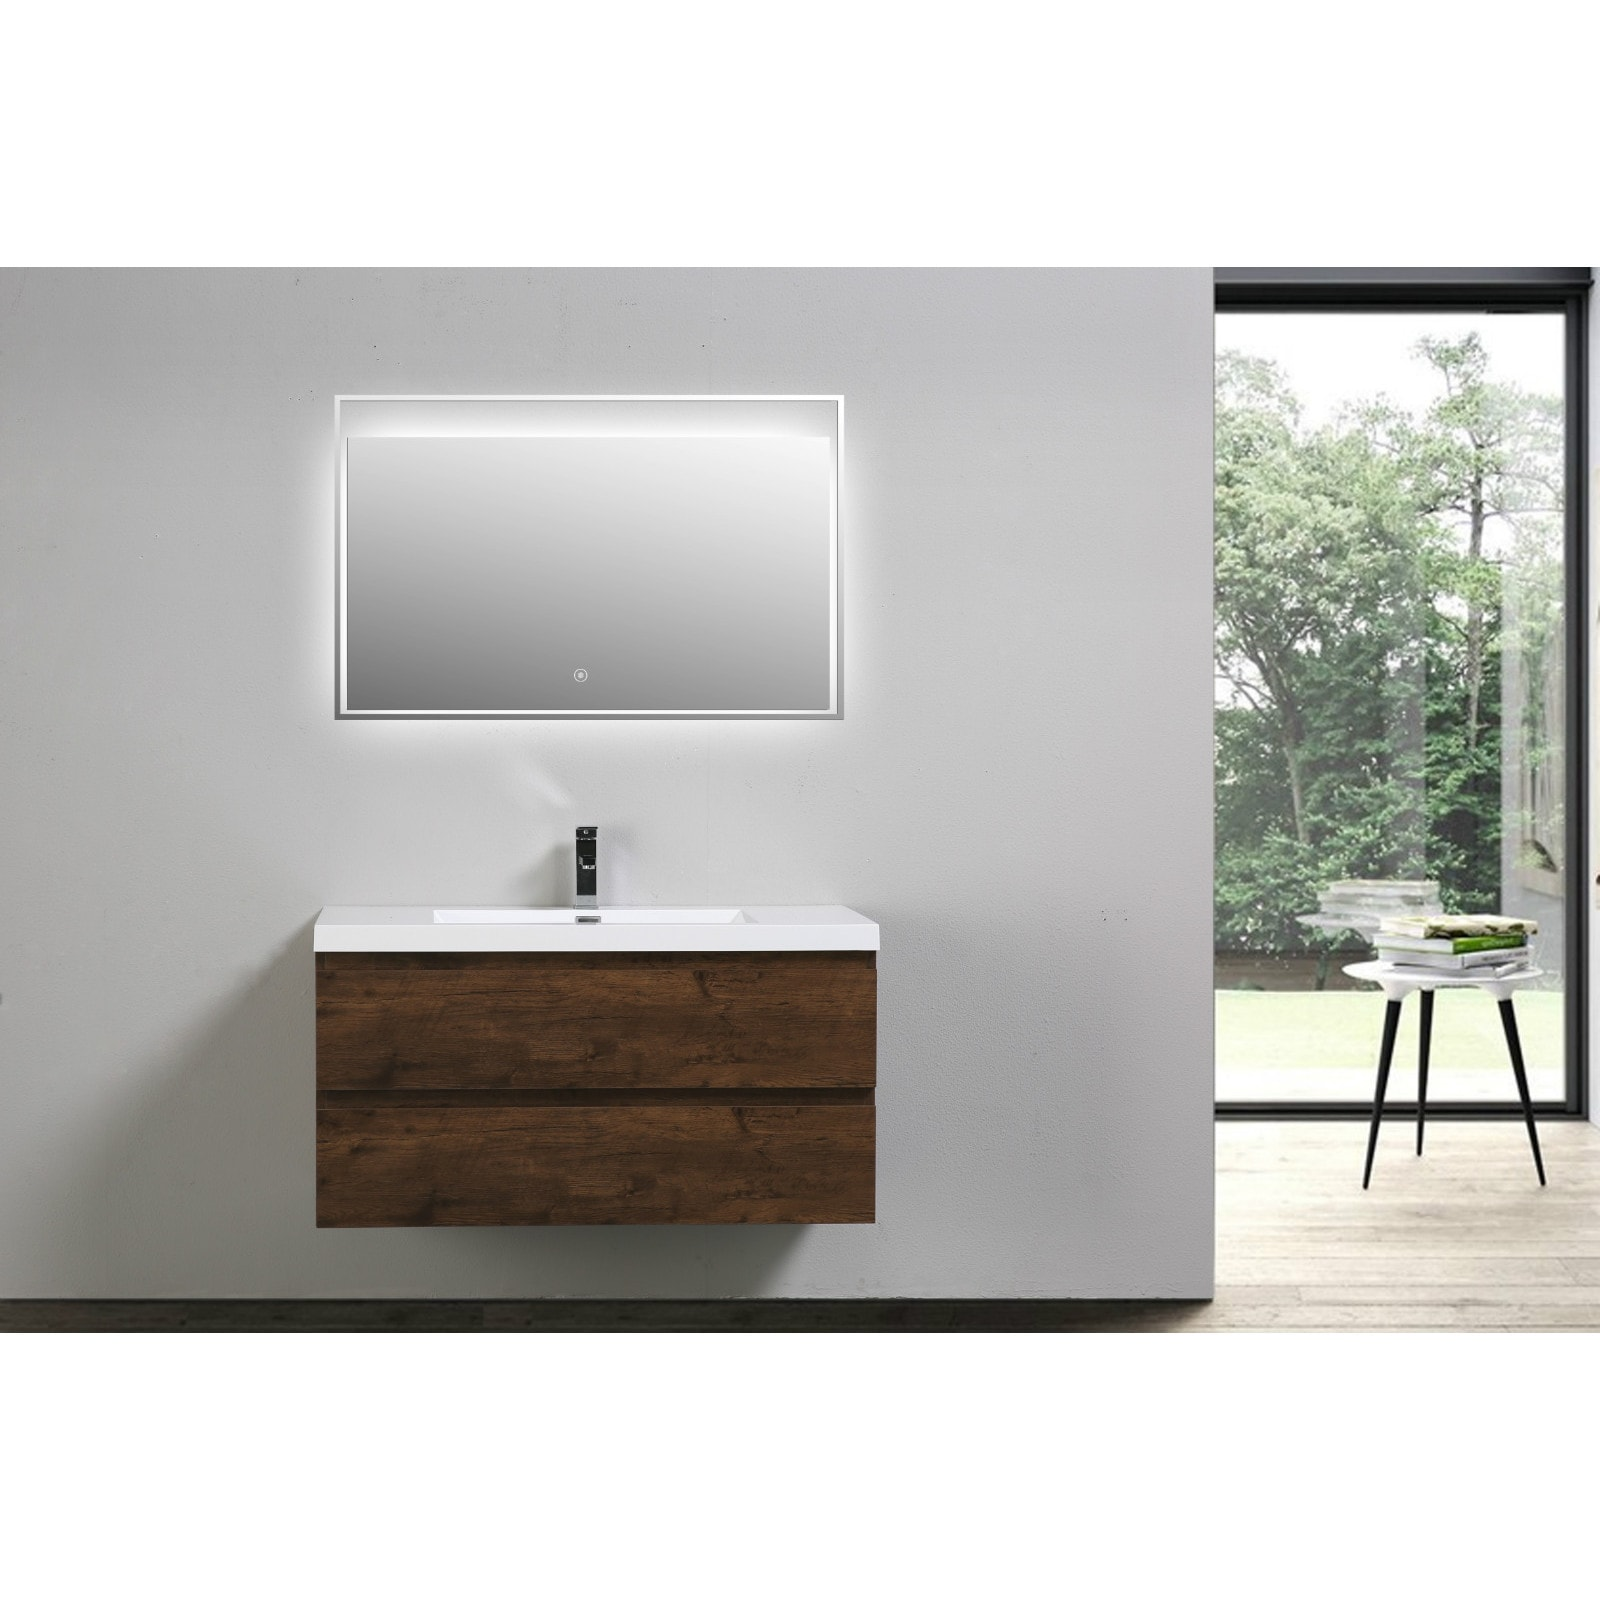 Shop Moreno Bath MOB 42 Inch Wall Mounted Modern Bathroom Vanity ...